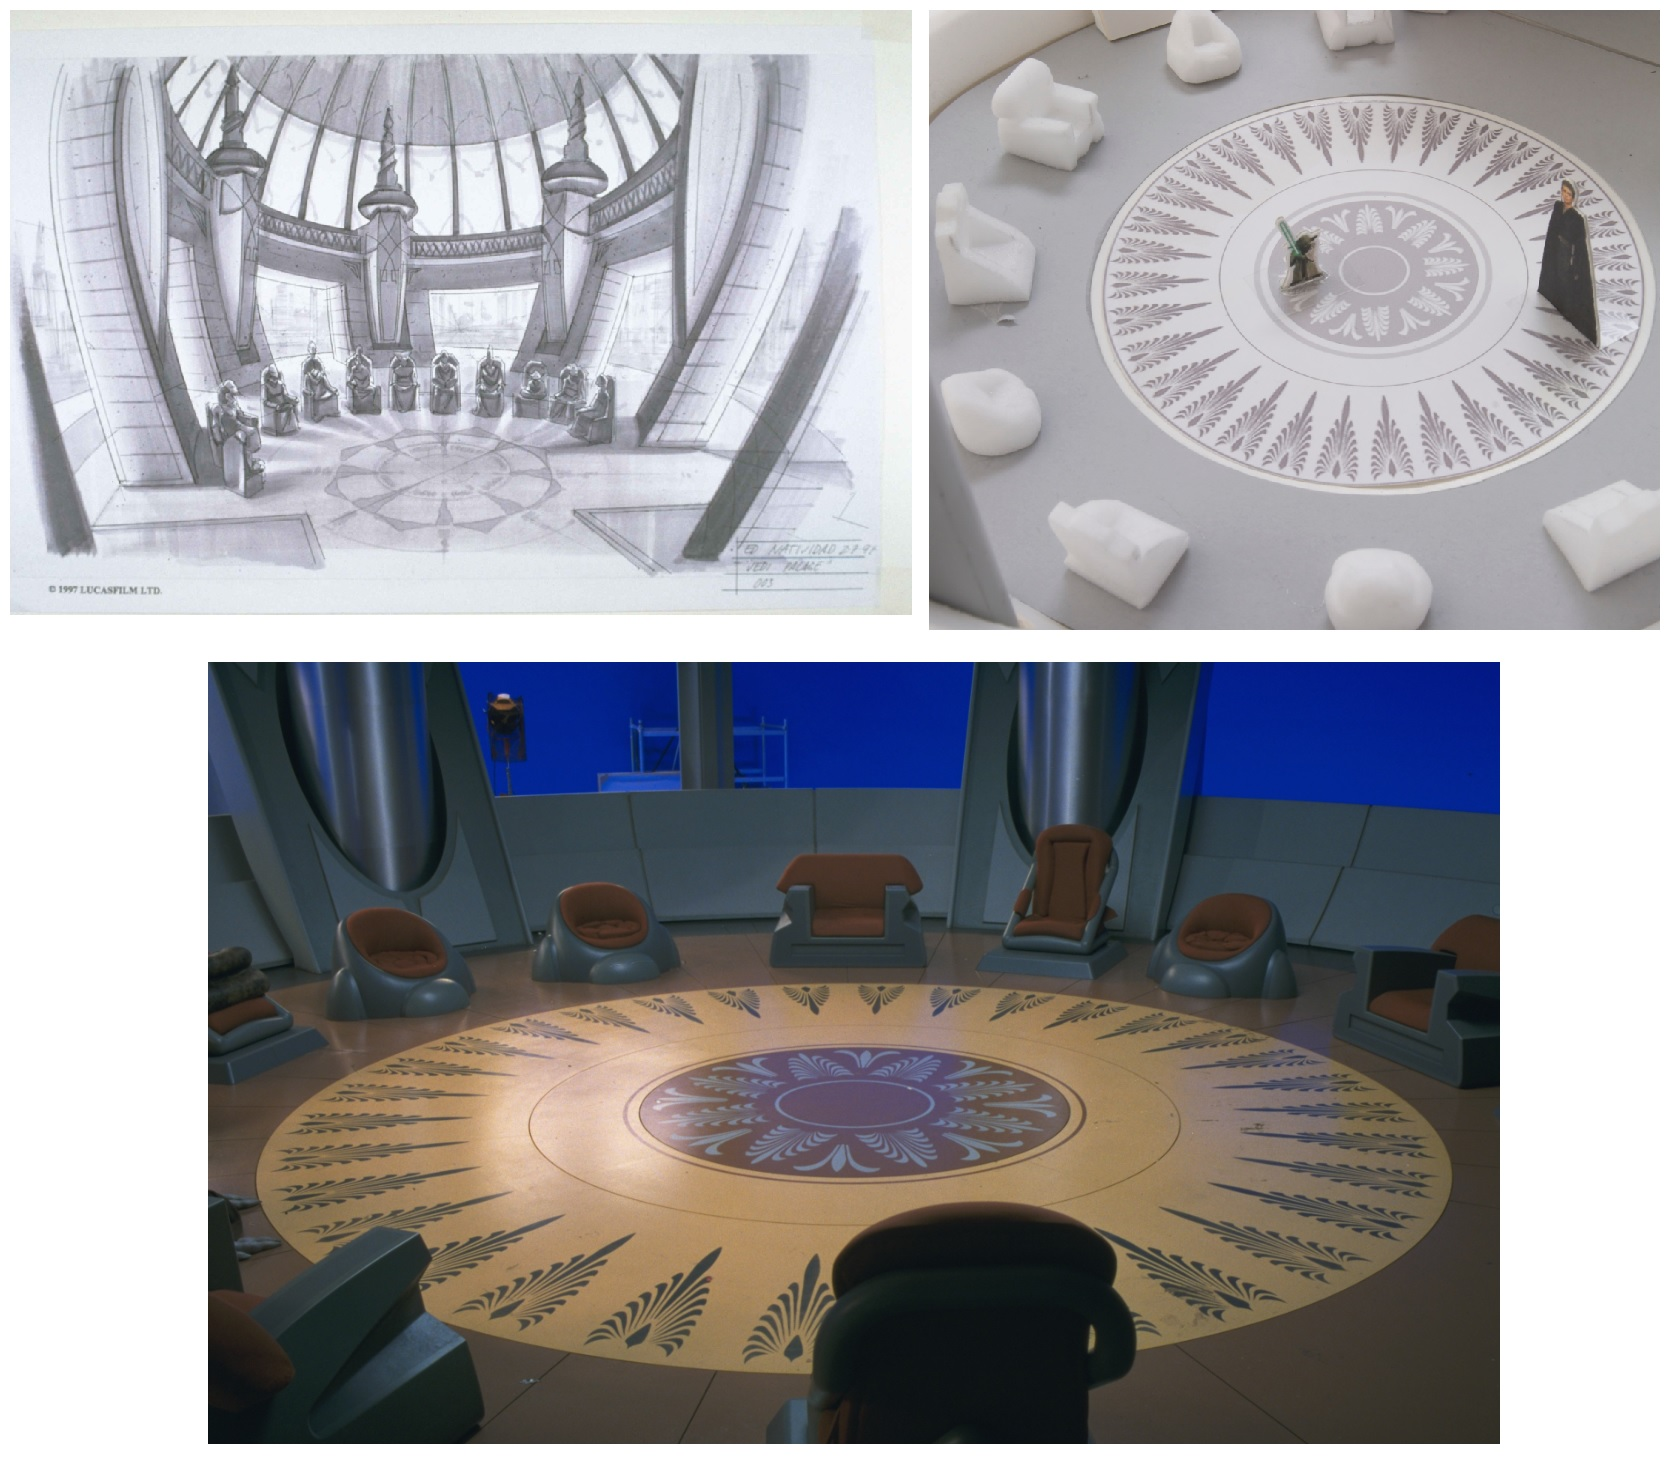 Top row: The Phantom Menace concept art & Jedi Council Chambers maquette. Bottom row: The Phantom Menace set with the old windows